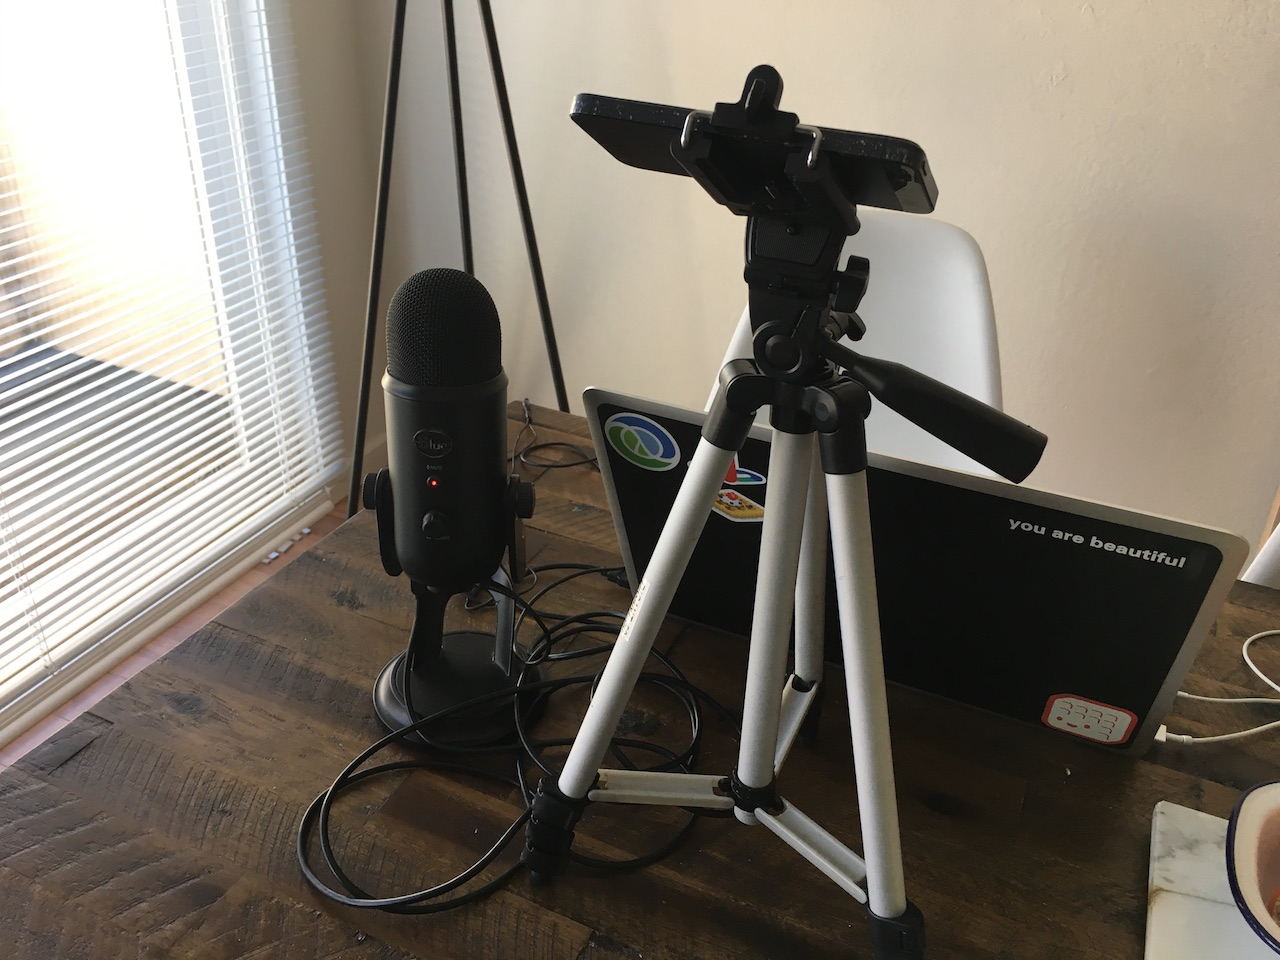 My homebrew usability testing setup, complete with microphone and tripod.